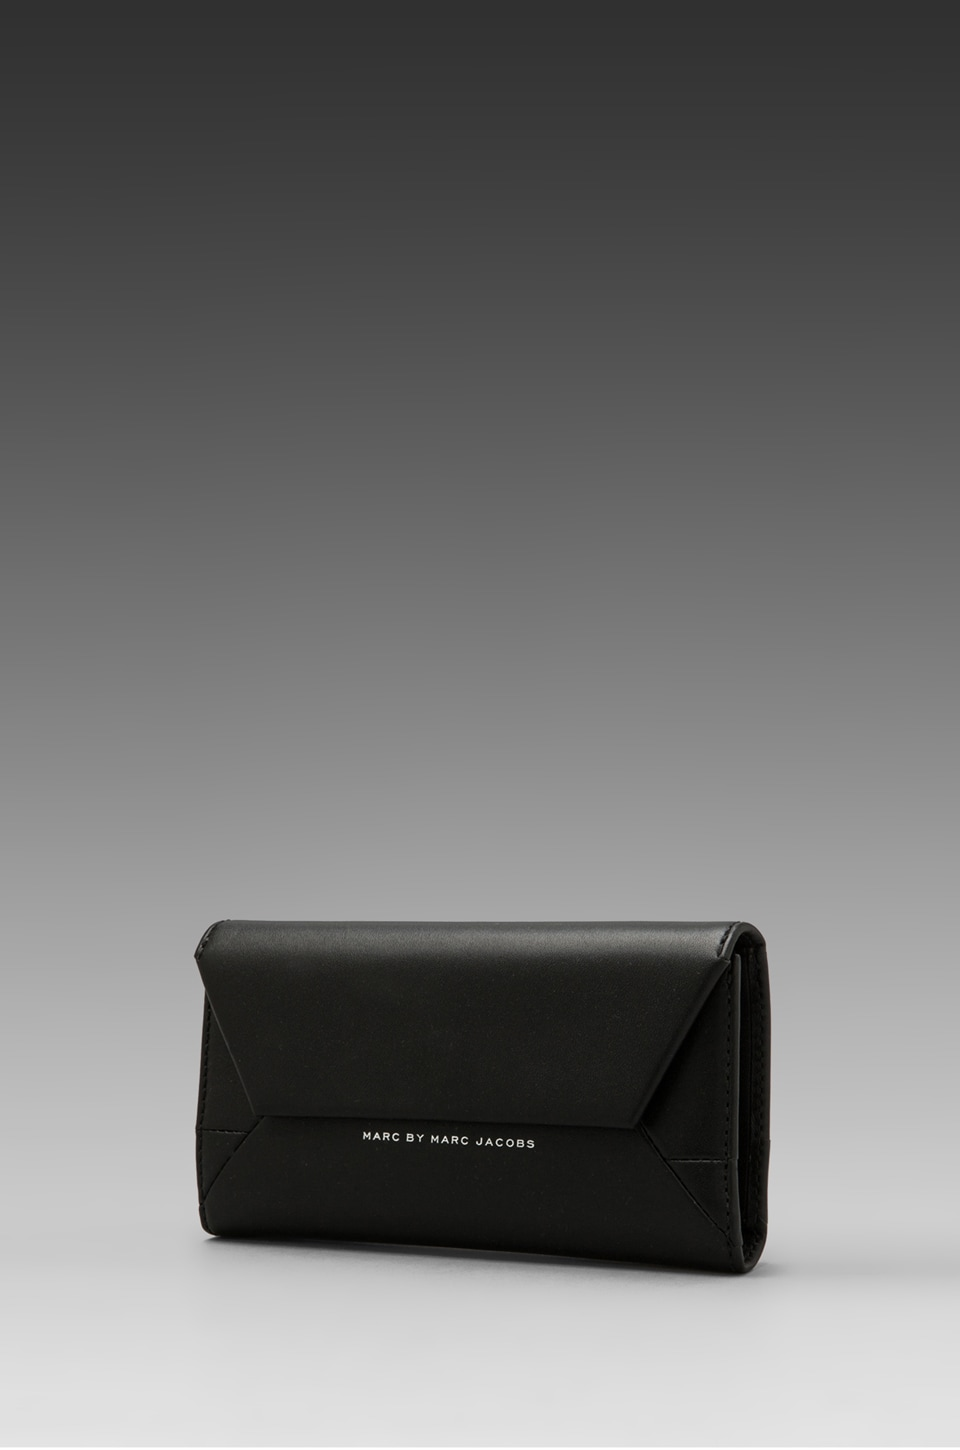 Marc by Marc Jacobs Updated Tangram Phone Wristlet in Black